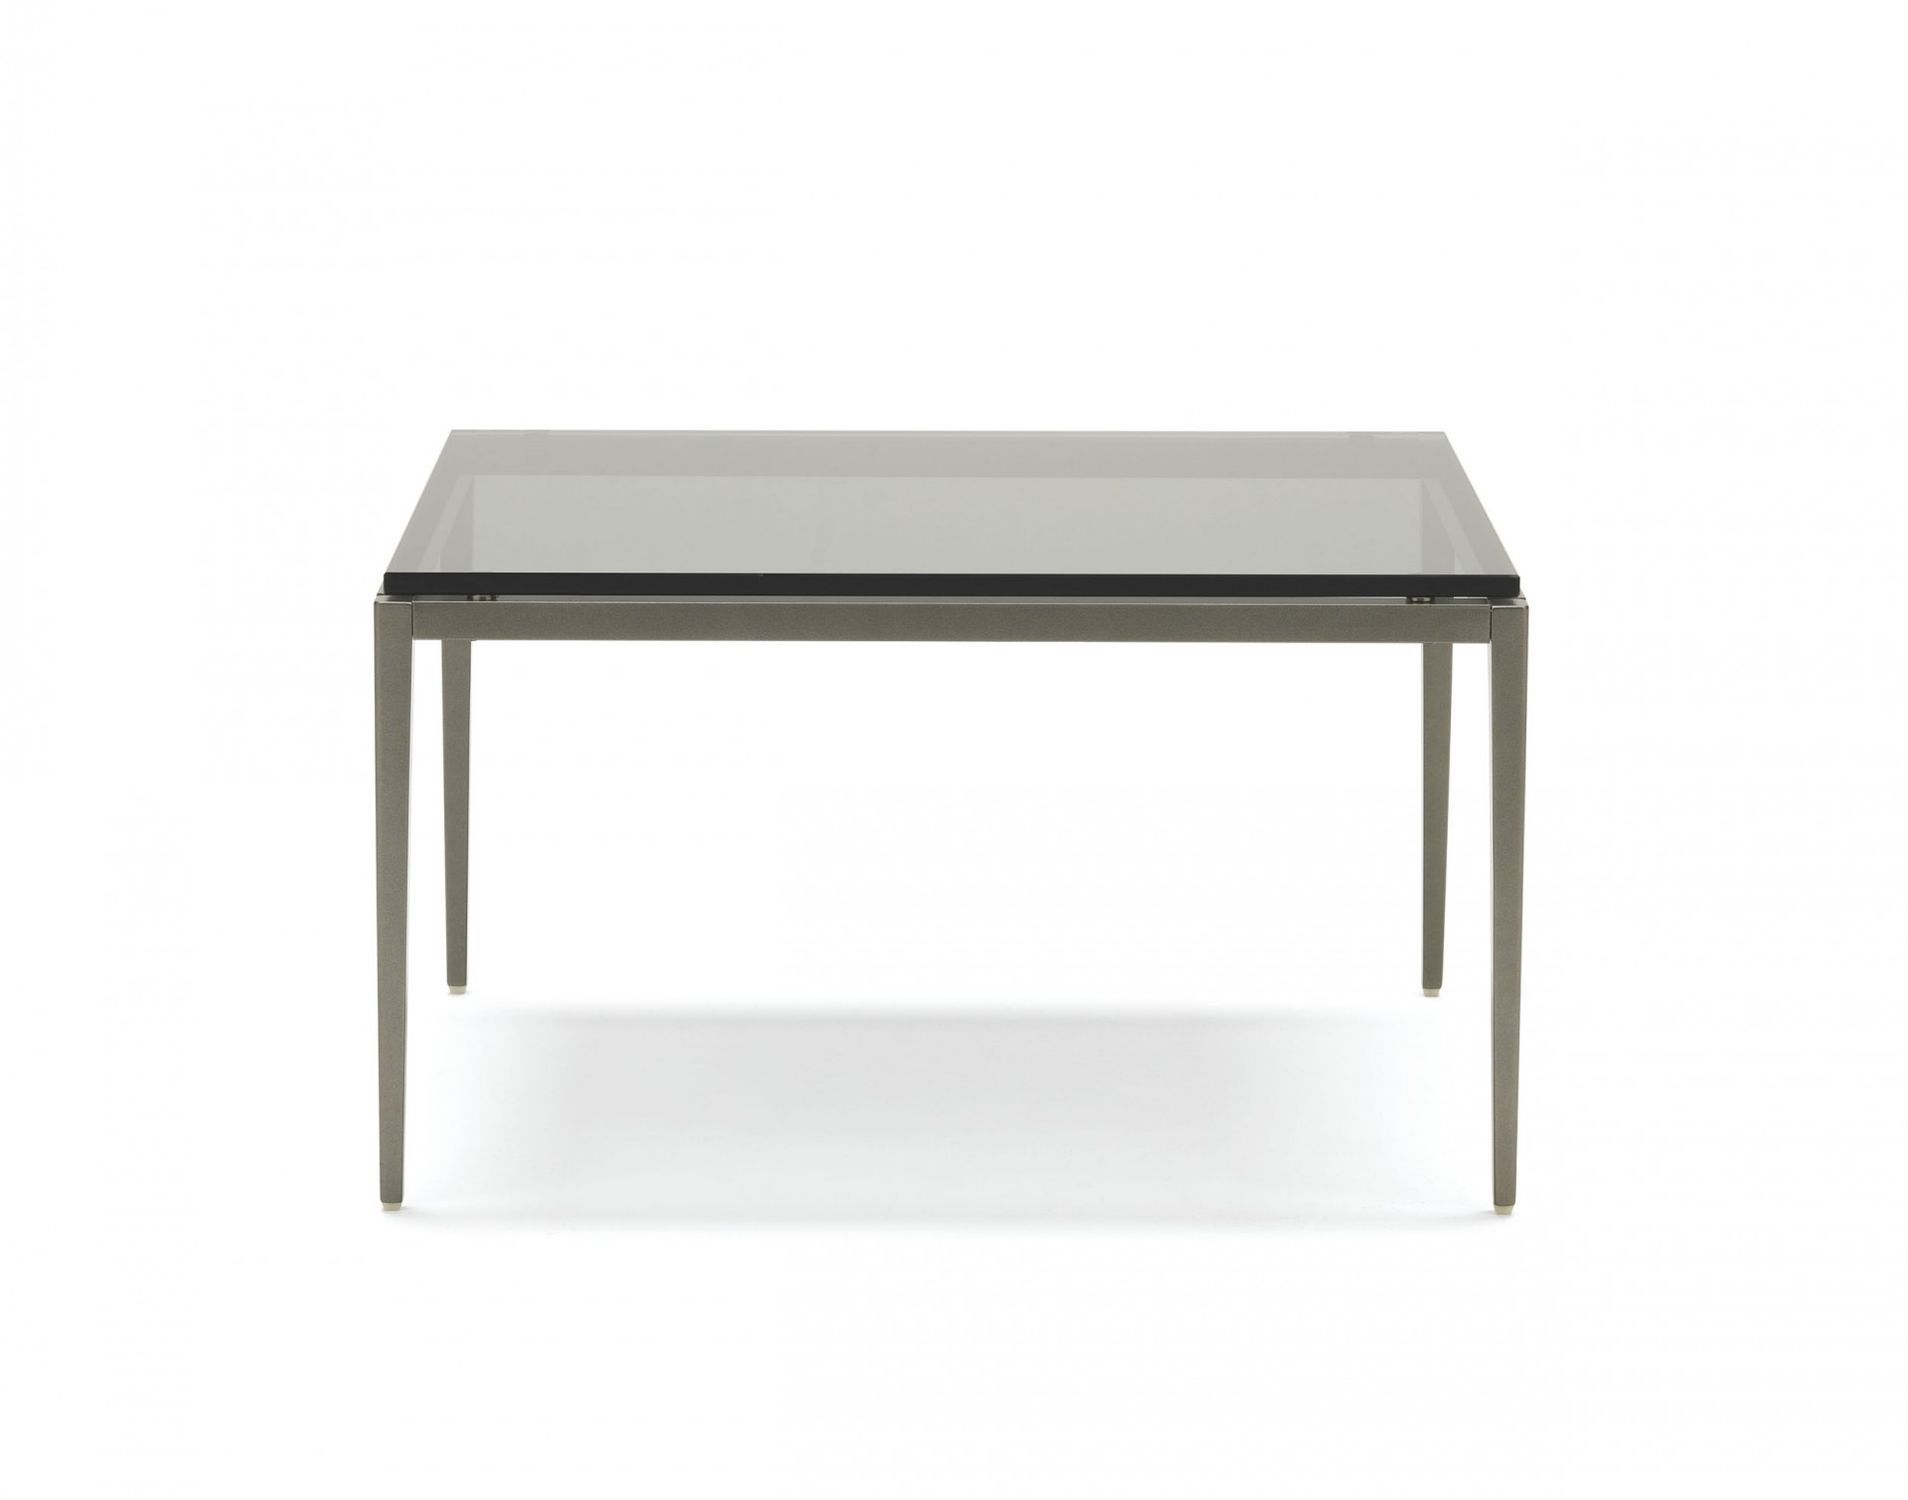 Table basse chene metal 17 id es de d coration for Table basse chene metal